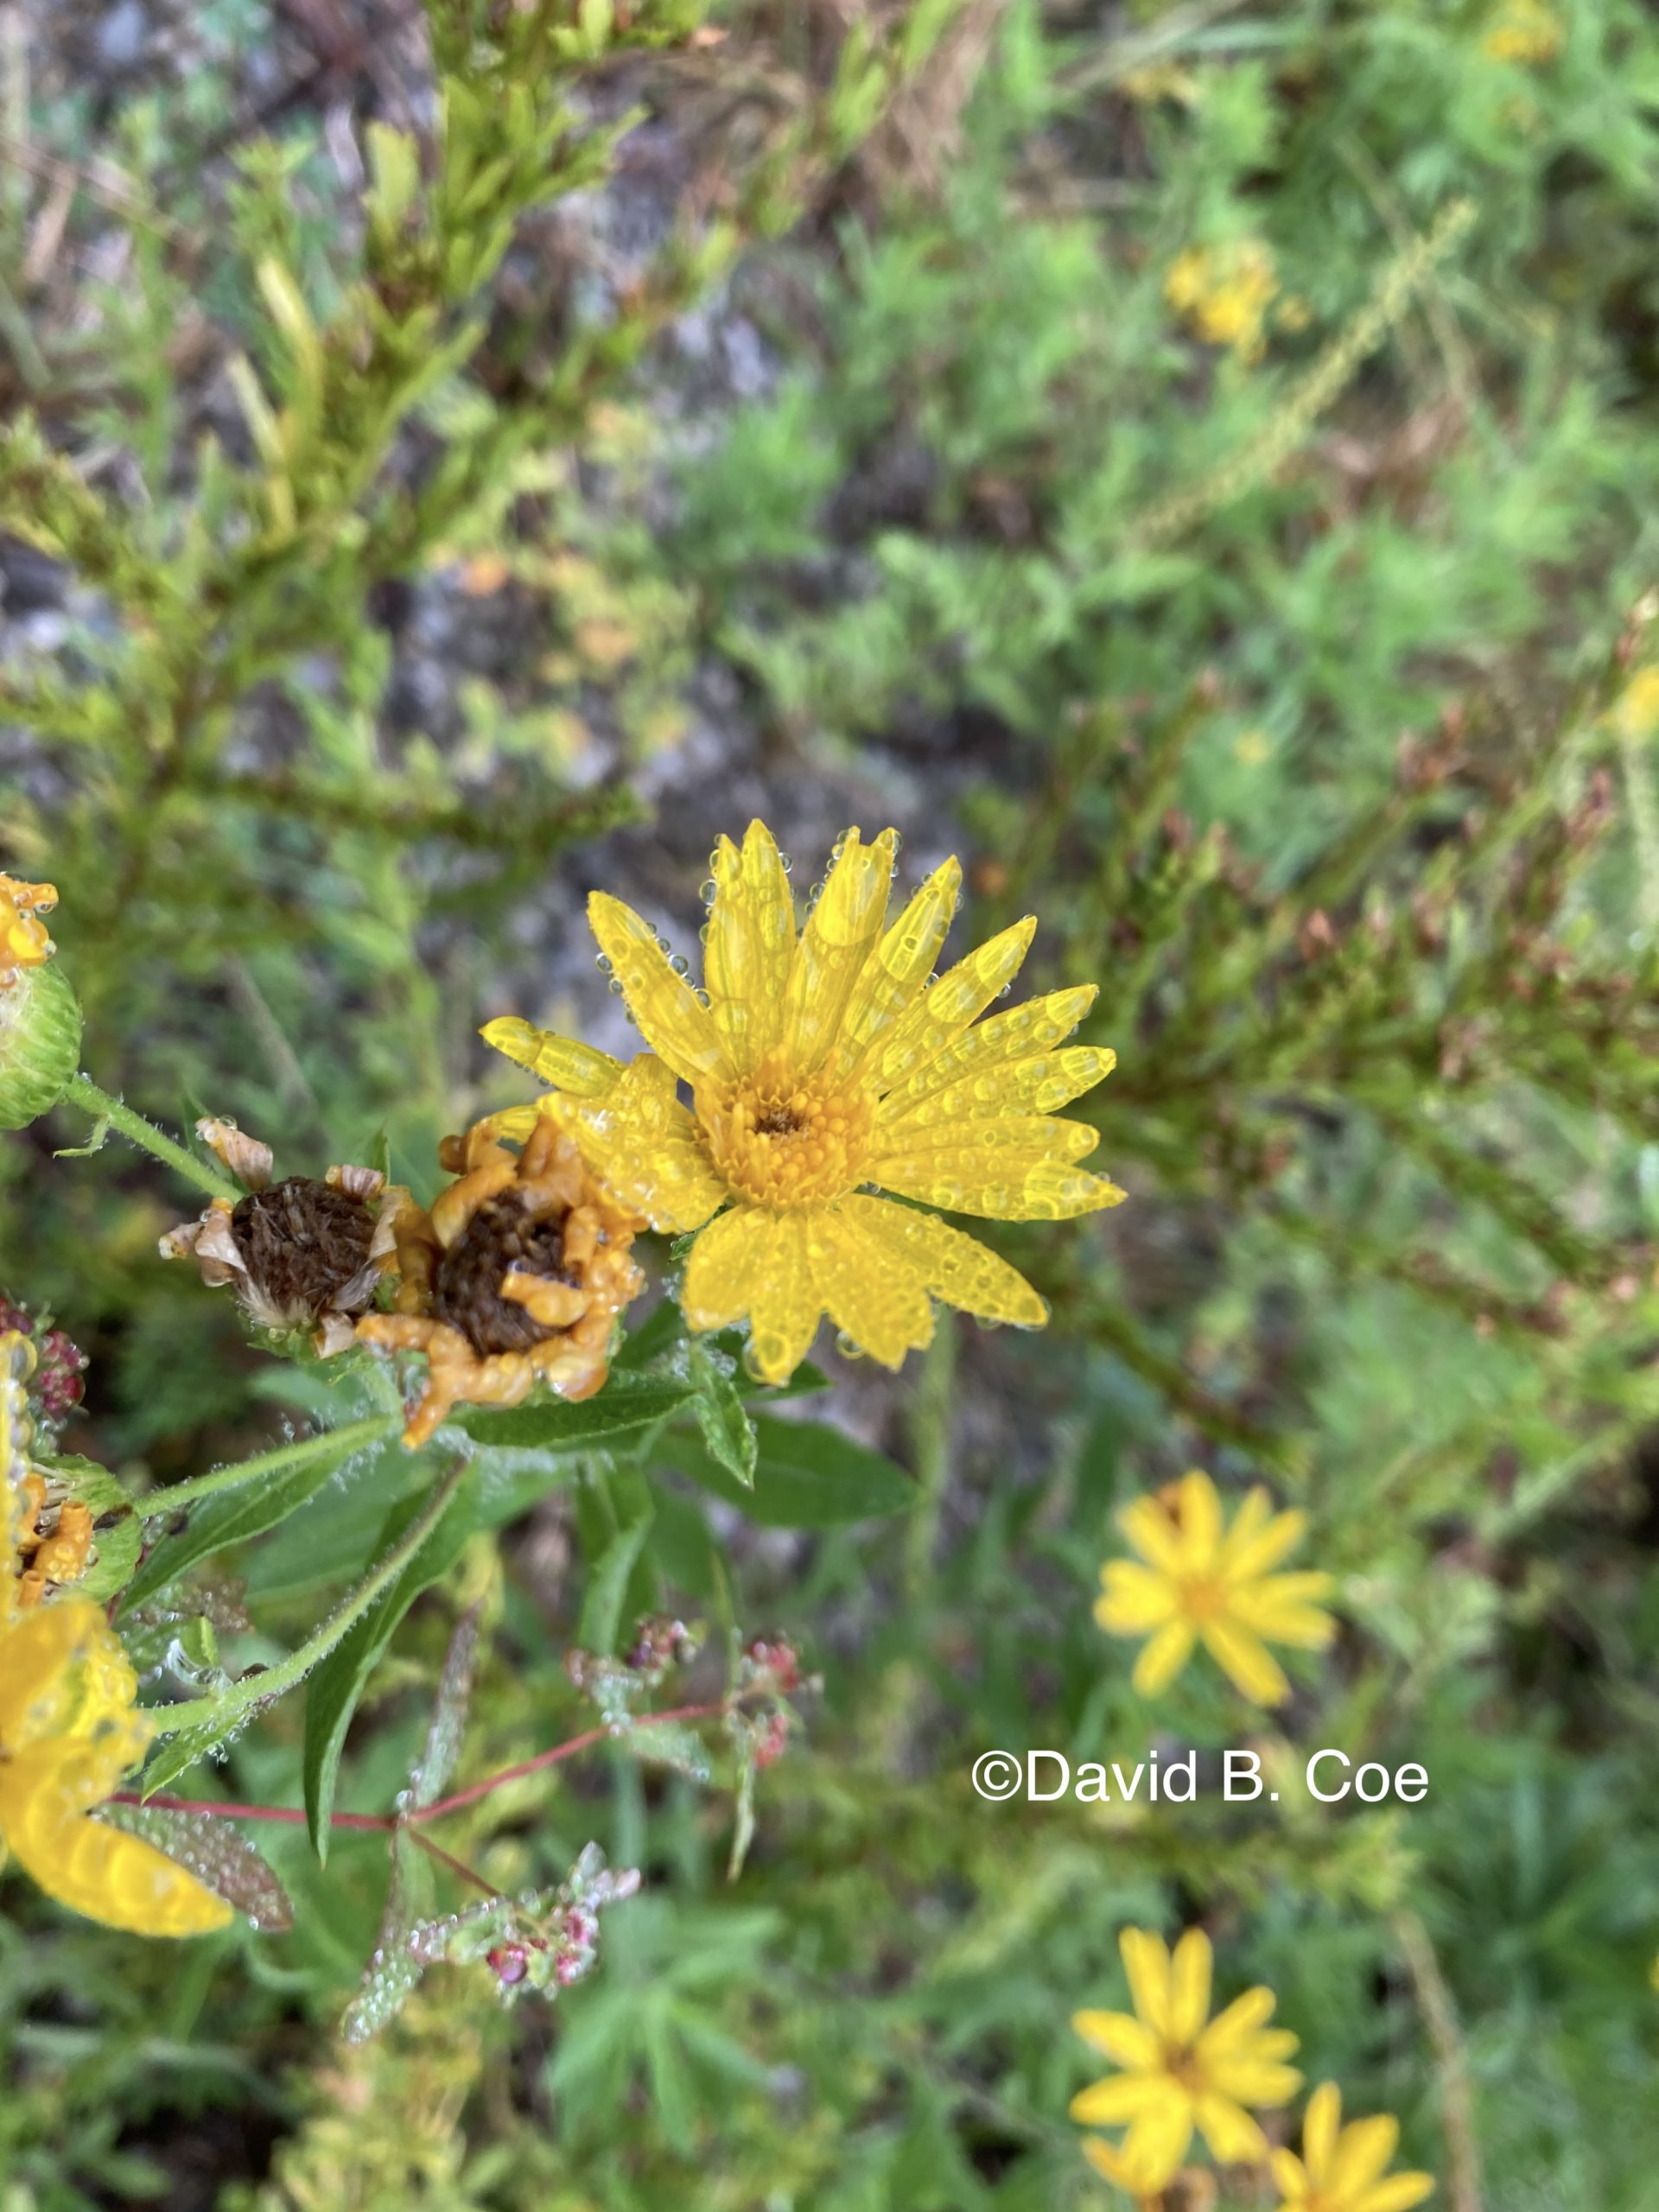 Fall Aster and Dew, by David B. Coe